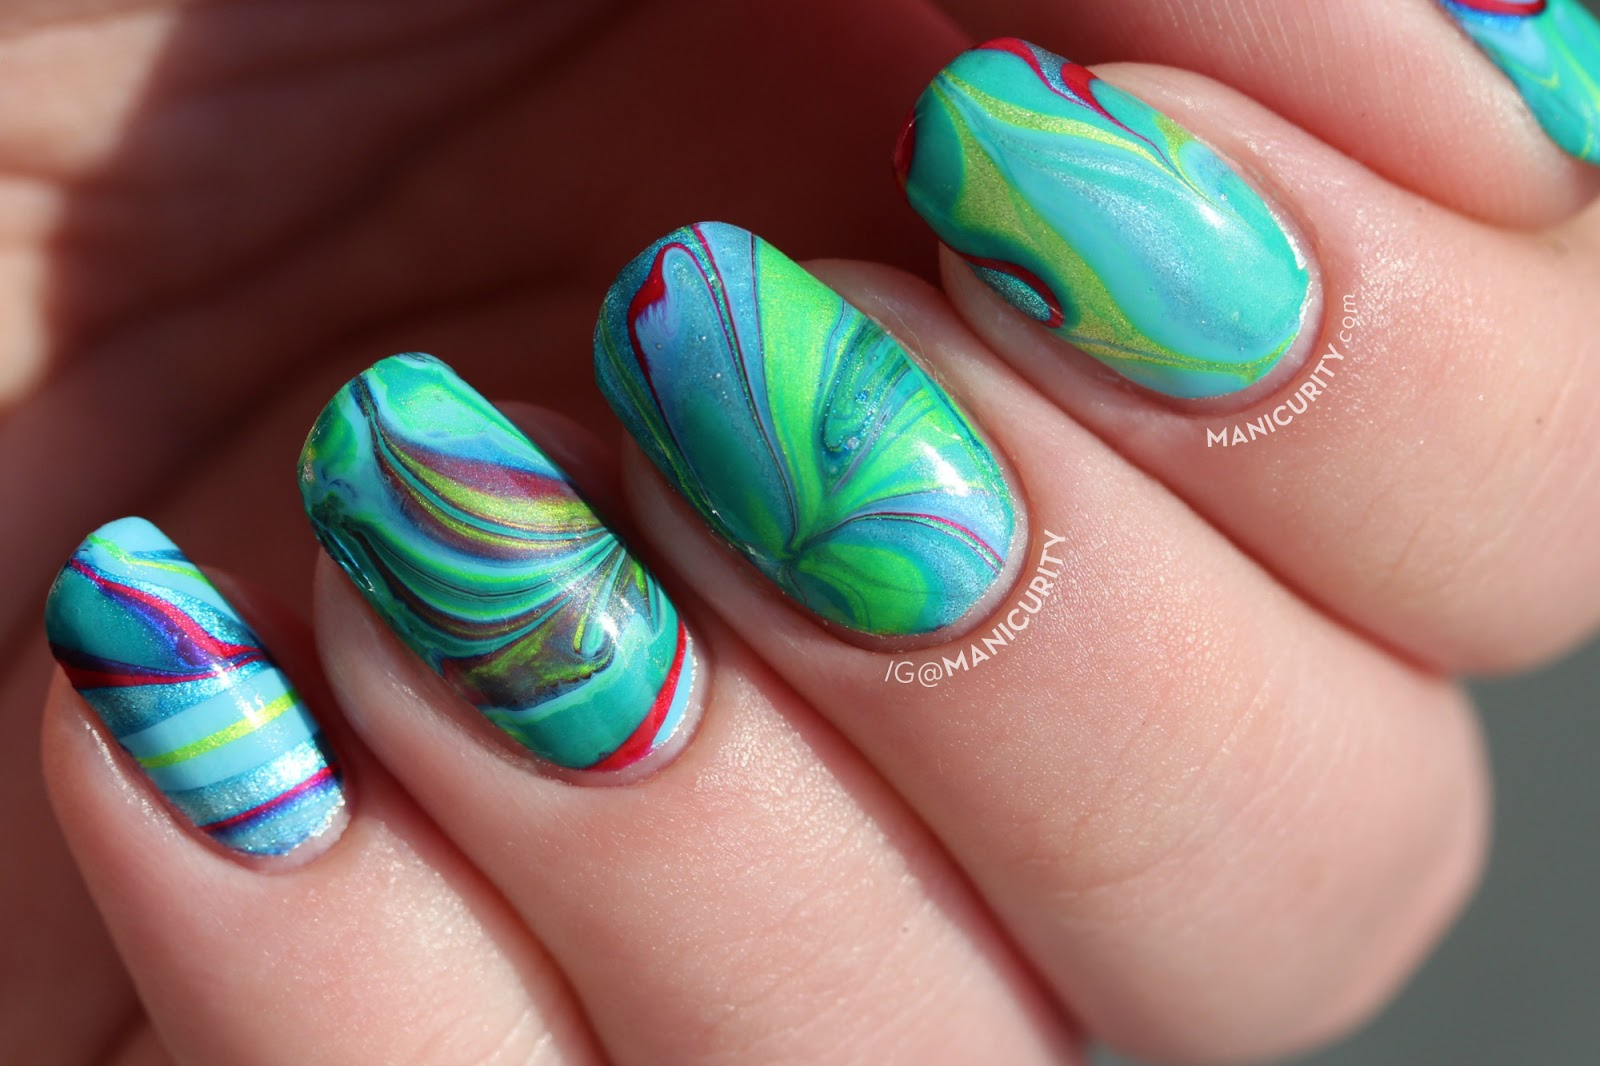 Green Conure Parrot Inspired Watermarble Nails with China Glaze Polishes - with a must-read tip for successful water marbling! | Manicurity.com